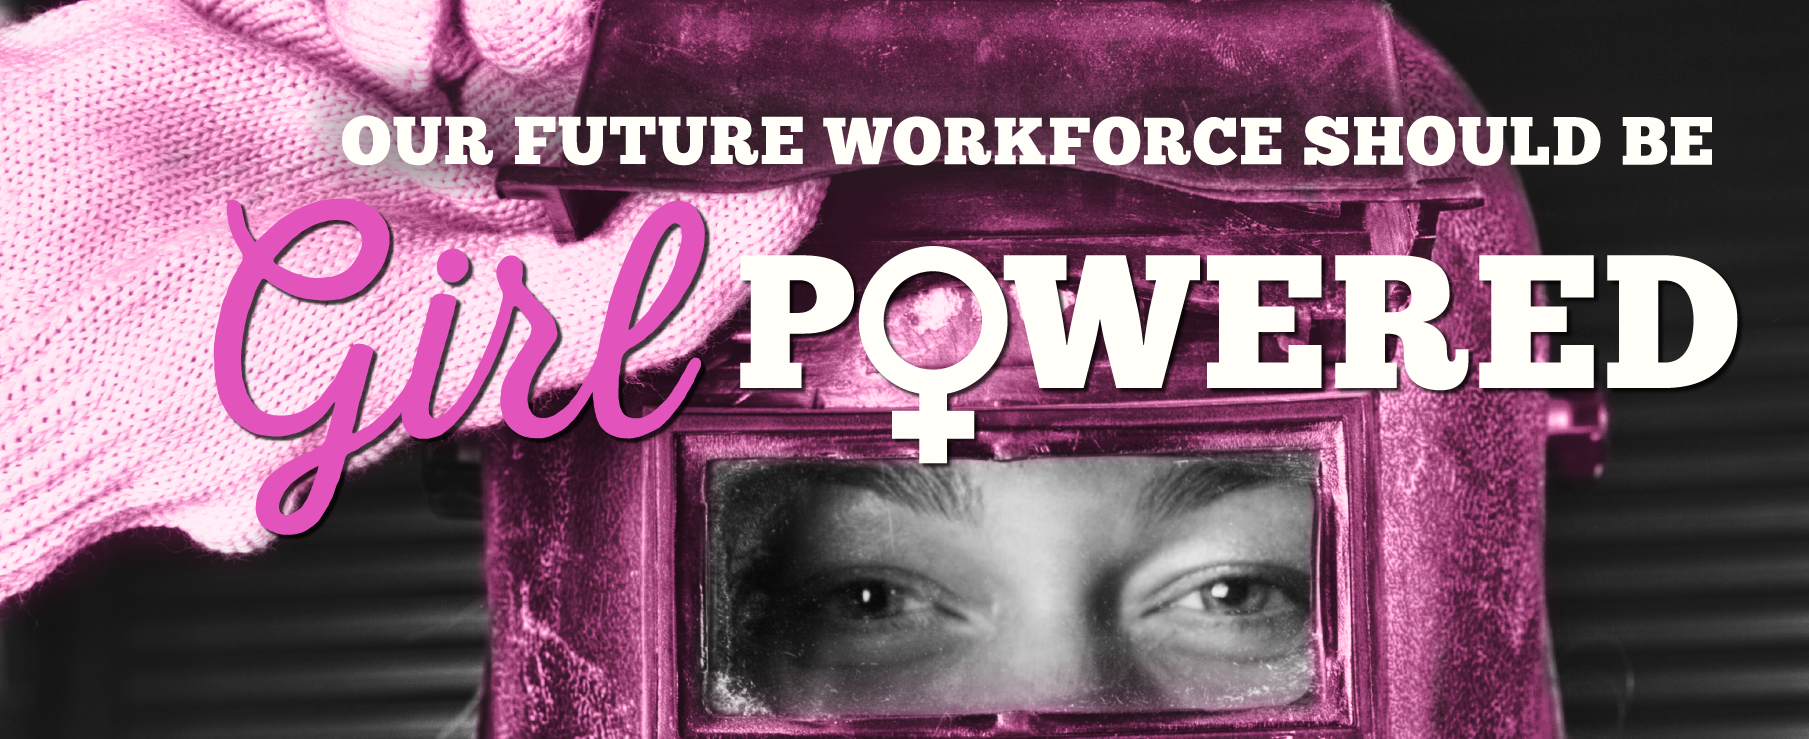 Our Future Workforce Should Be Girl Powered